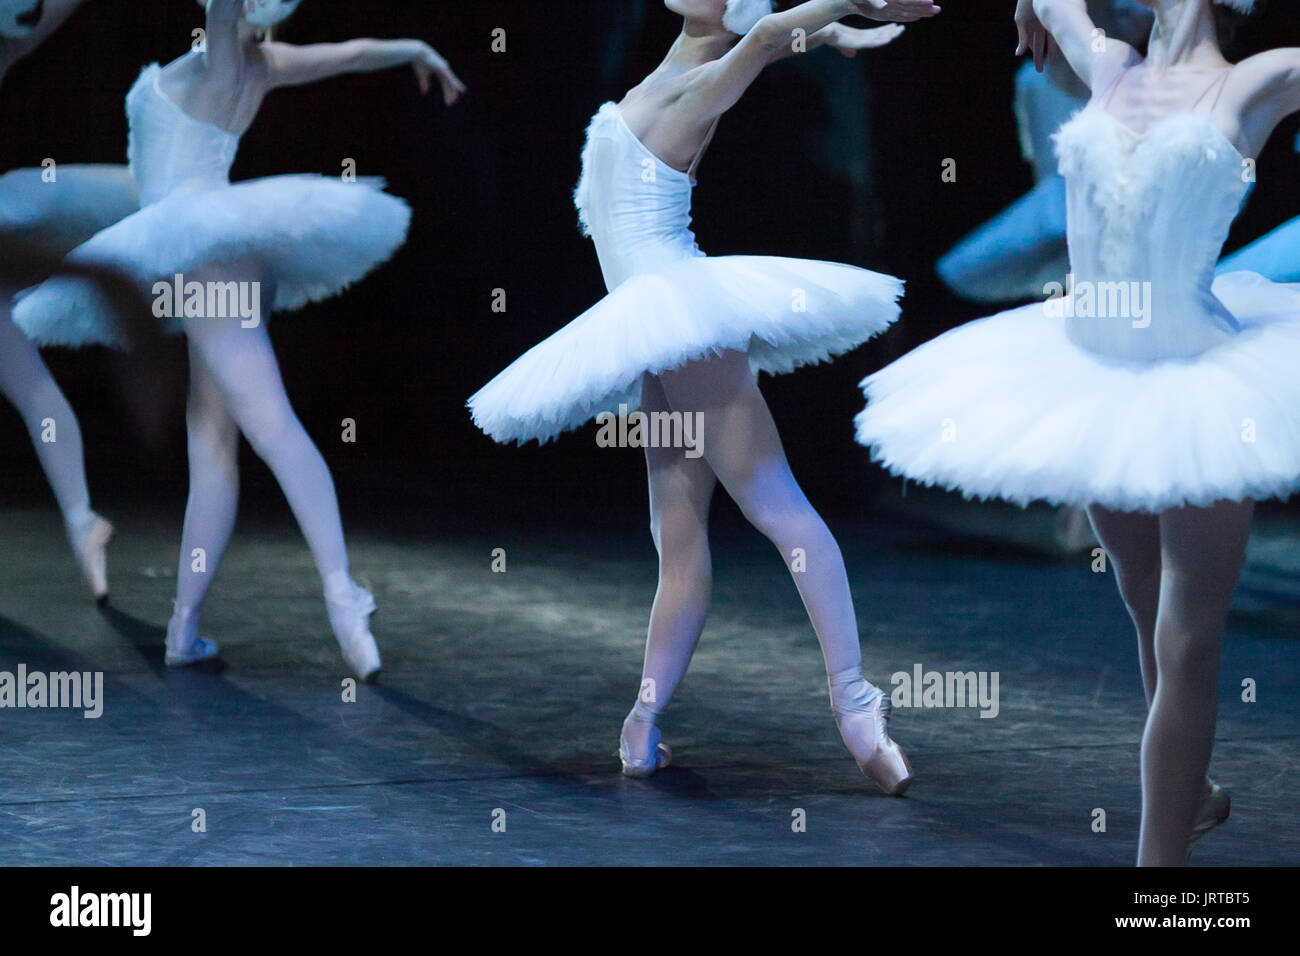 culture, tradition, choreography concept. sylph like, slender and graceful, ravishing female ballet dancers dressed in wonderful garbs decorated with white feathers - Stock Image